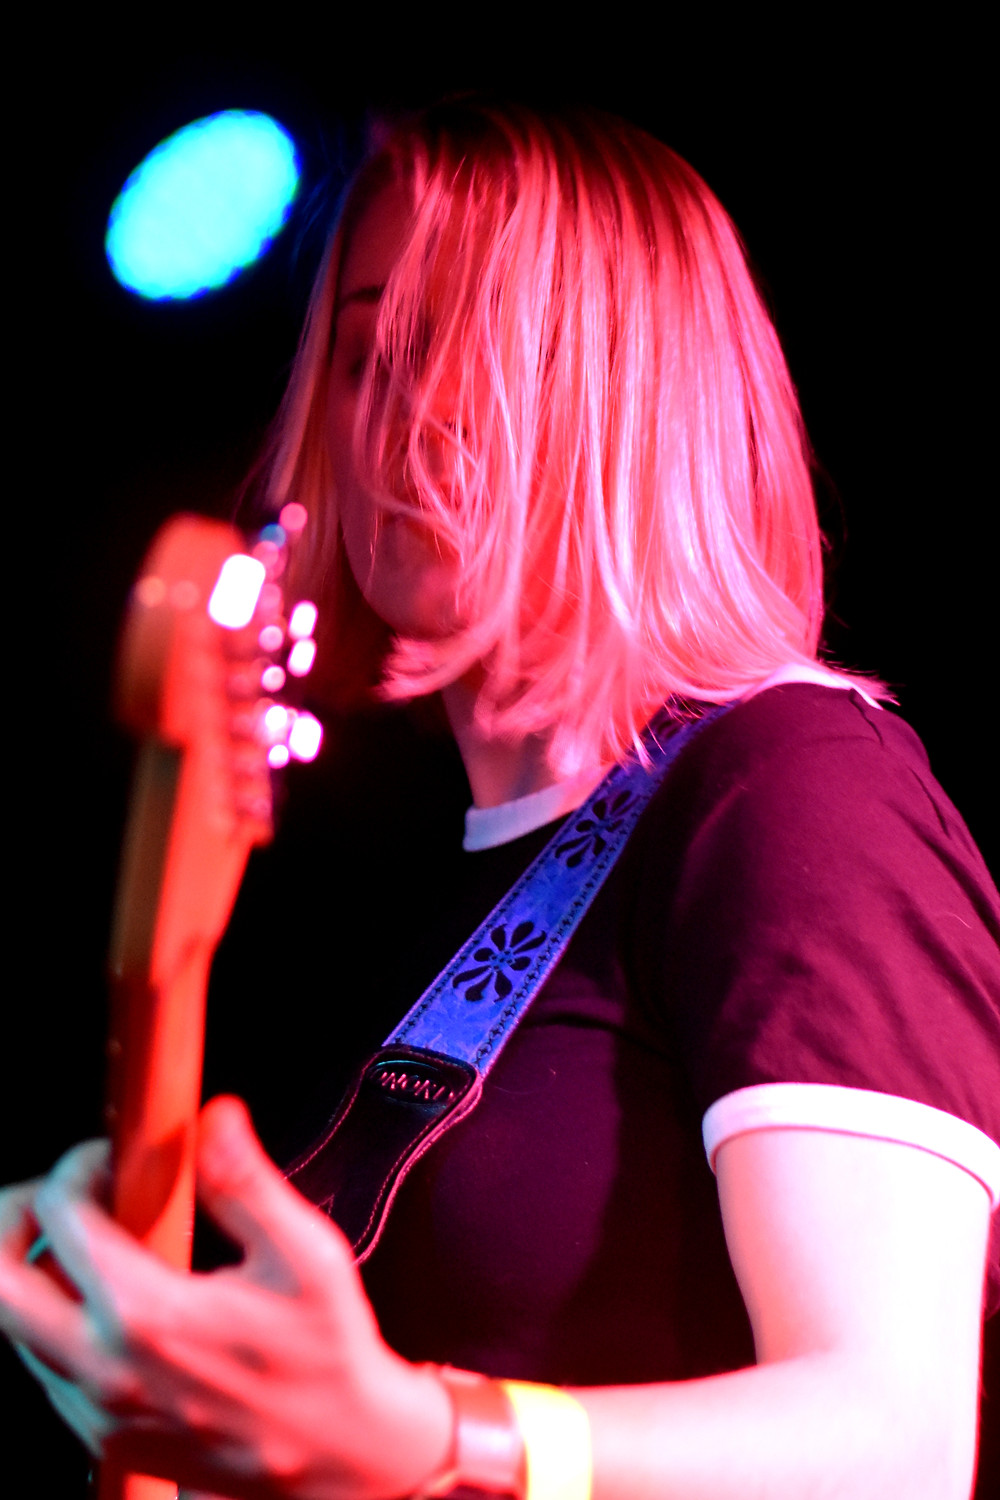 Liz Fisher of The Cordial Sins (photo by Sean O'Connor)